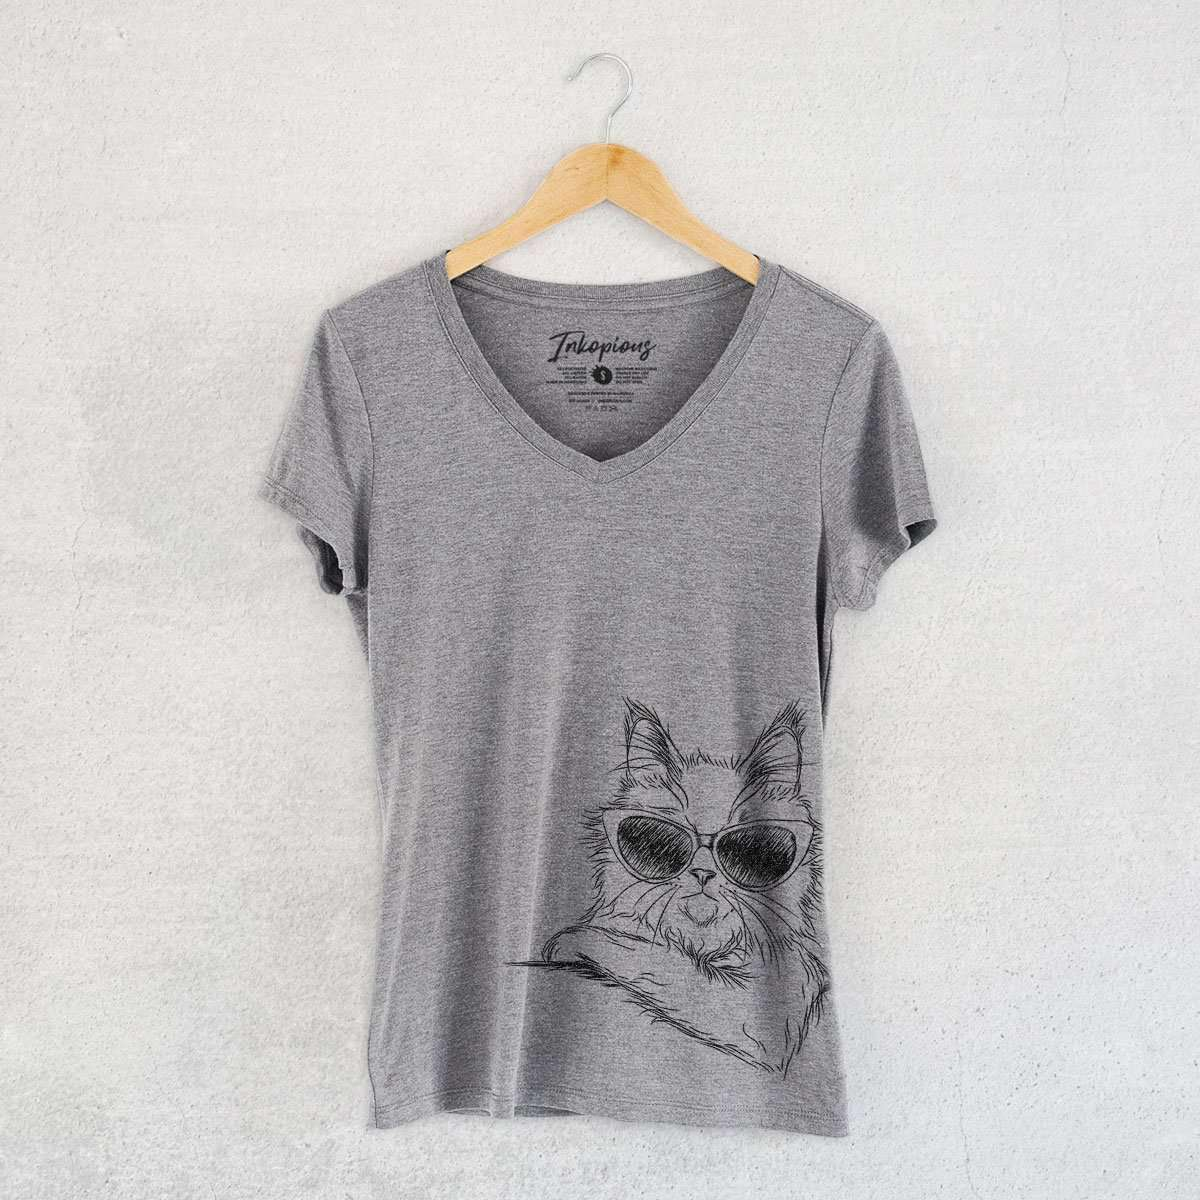 Ginger the Maine Coon - Women's Modern Fit V-neck Shirt